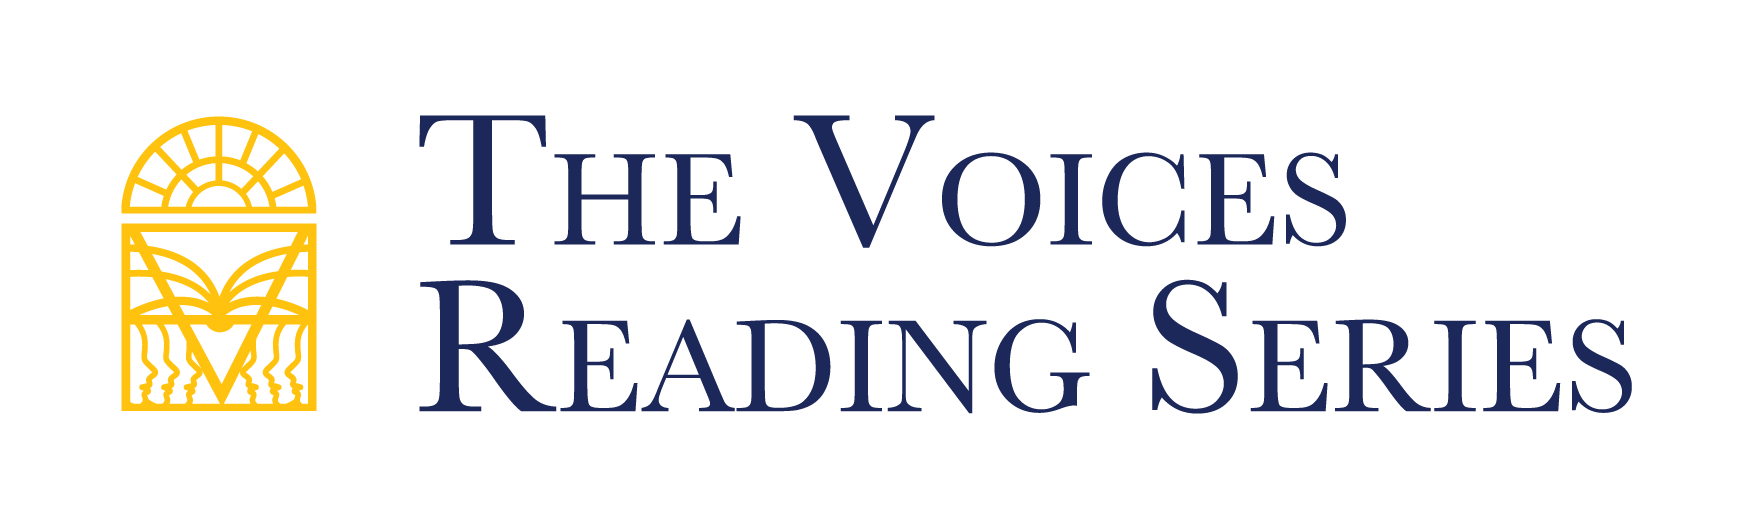 The Voices Reading Series, logo